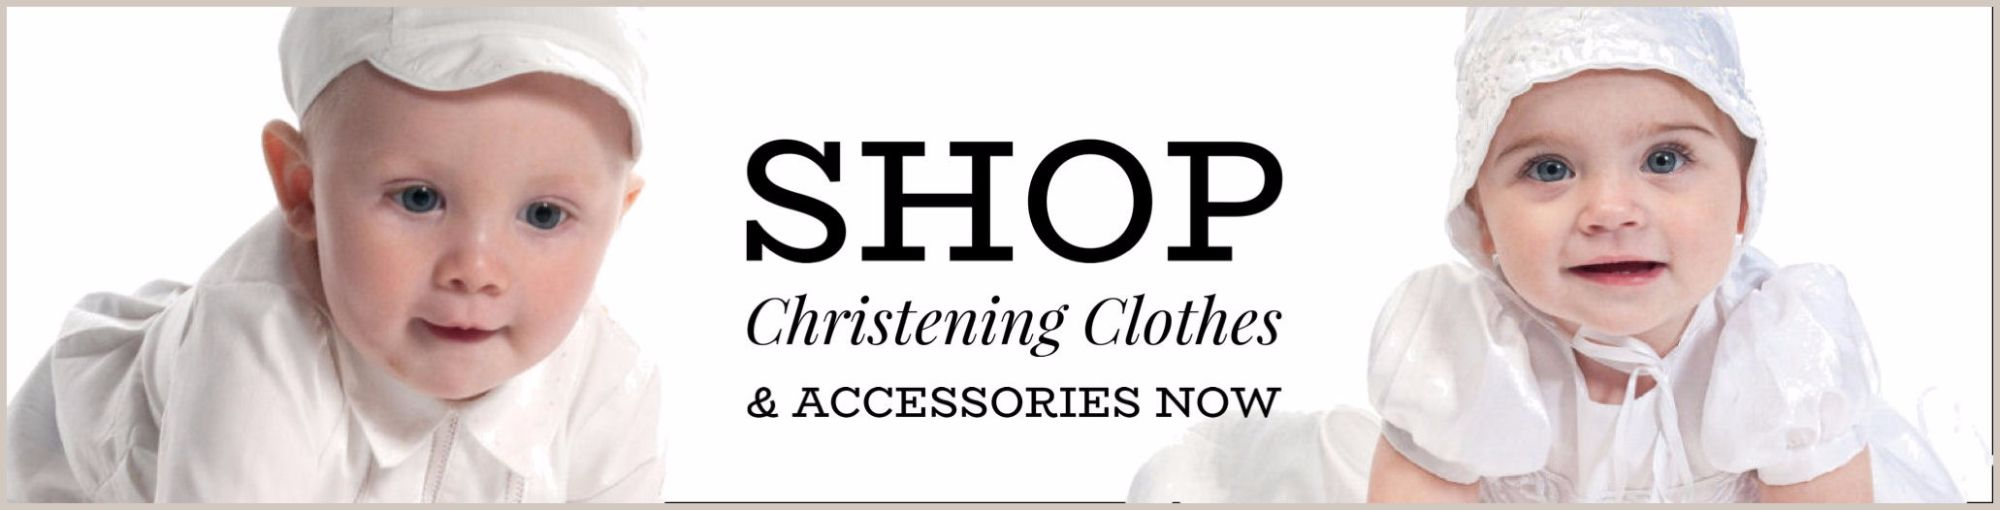 Shop Christening Clothes Now